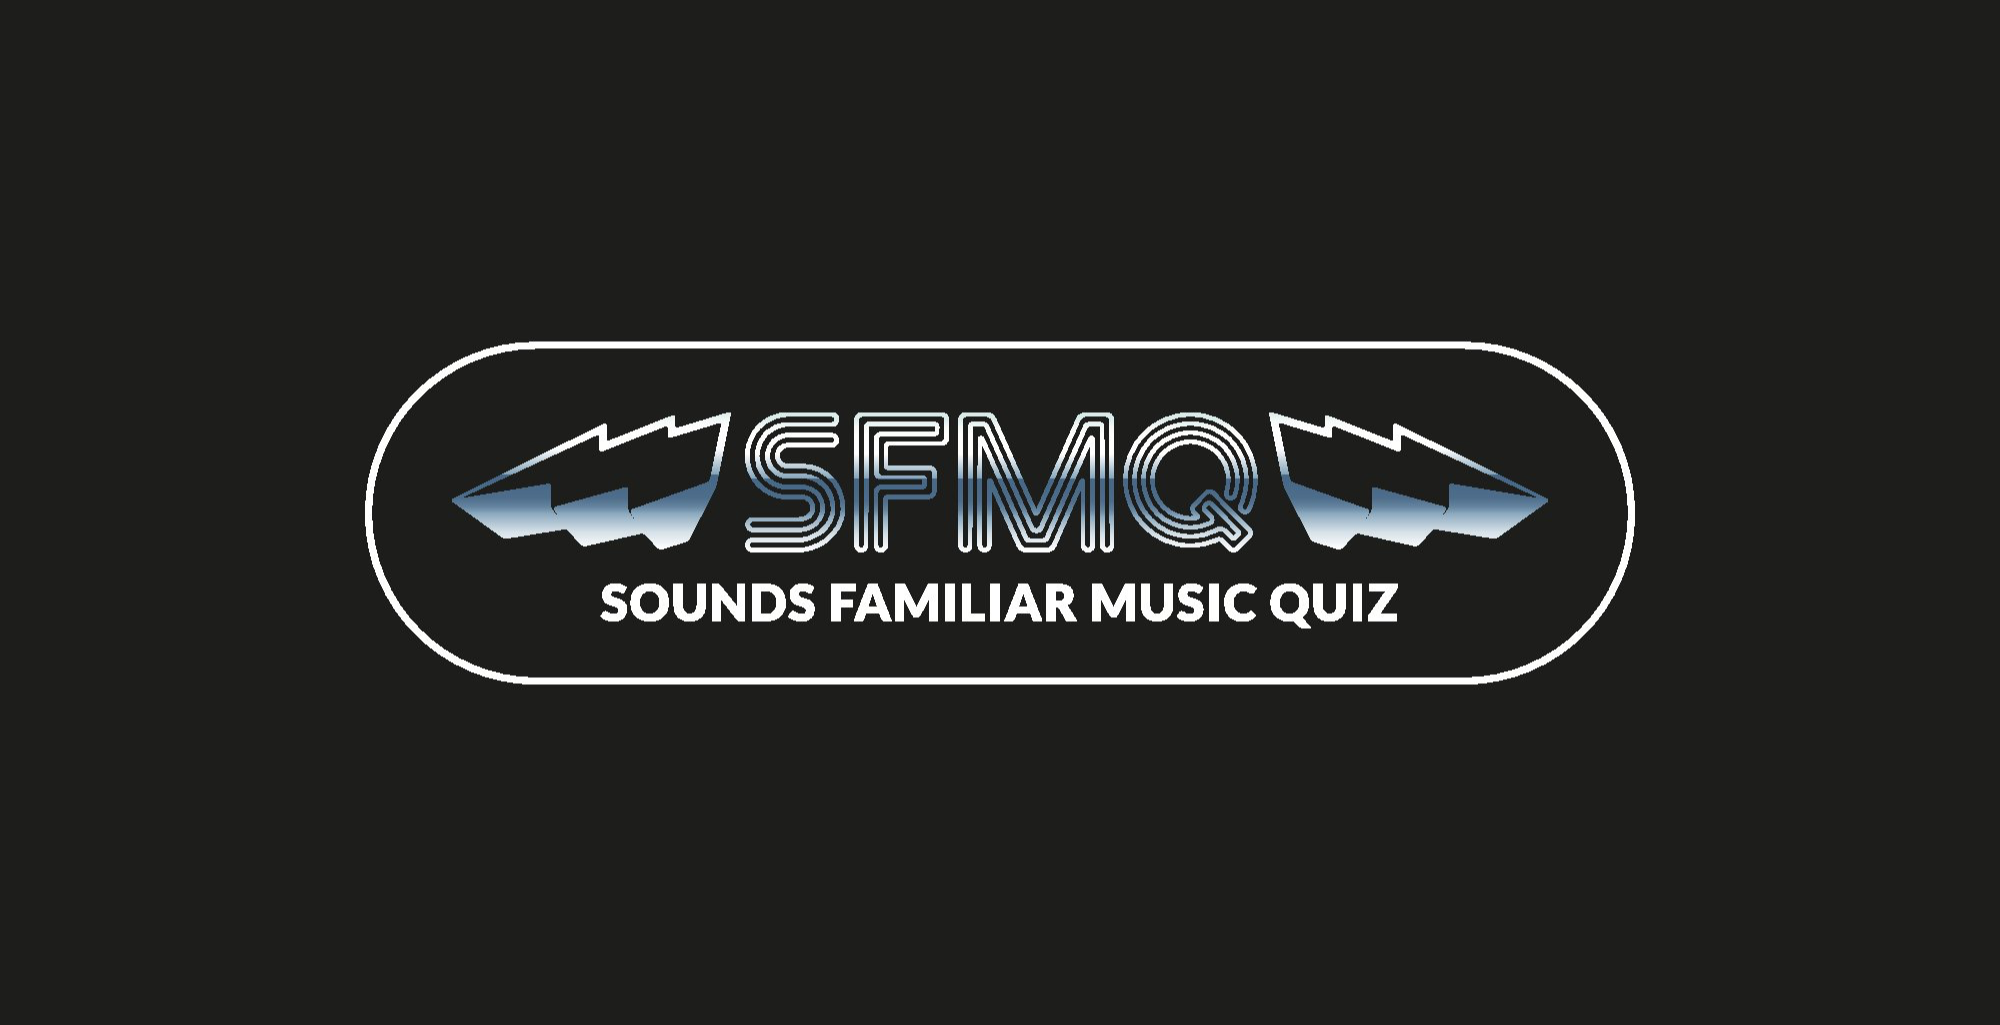 Sounds Familiar Music Quiz - Birmingham